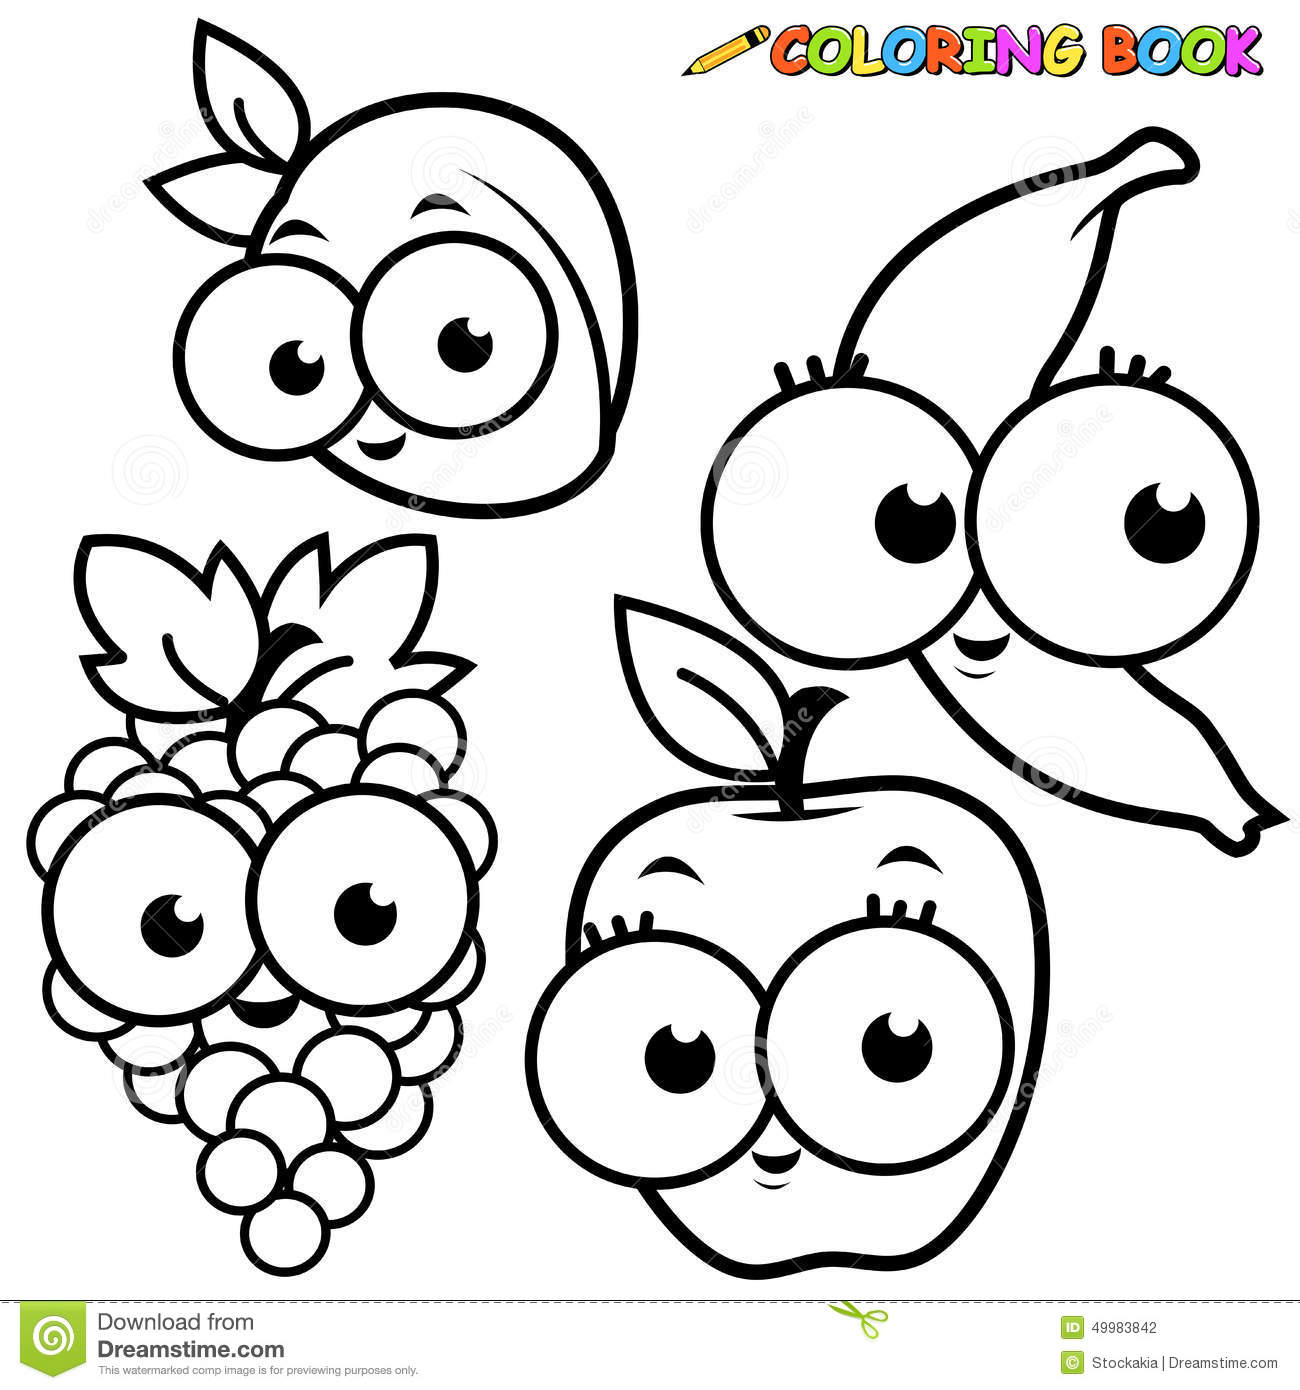 coloring book page fruits set stock vector image 49983842